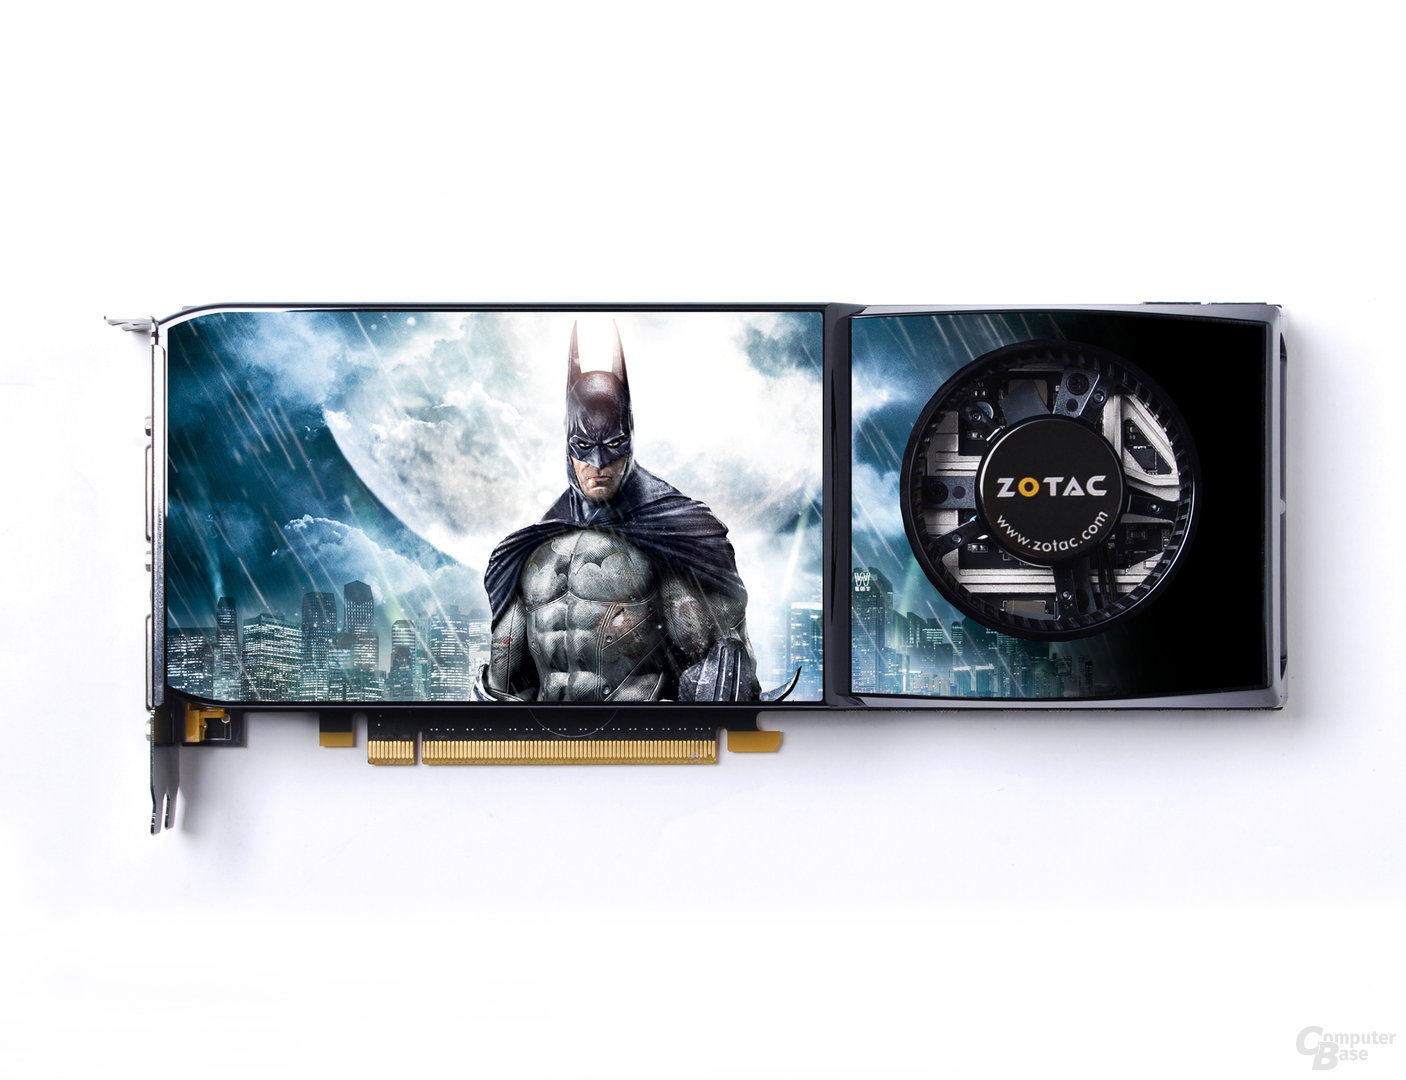 Zotac GeForce GTX 285 Batman Edition